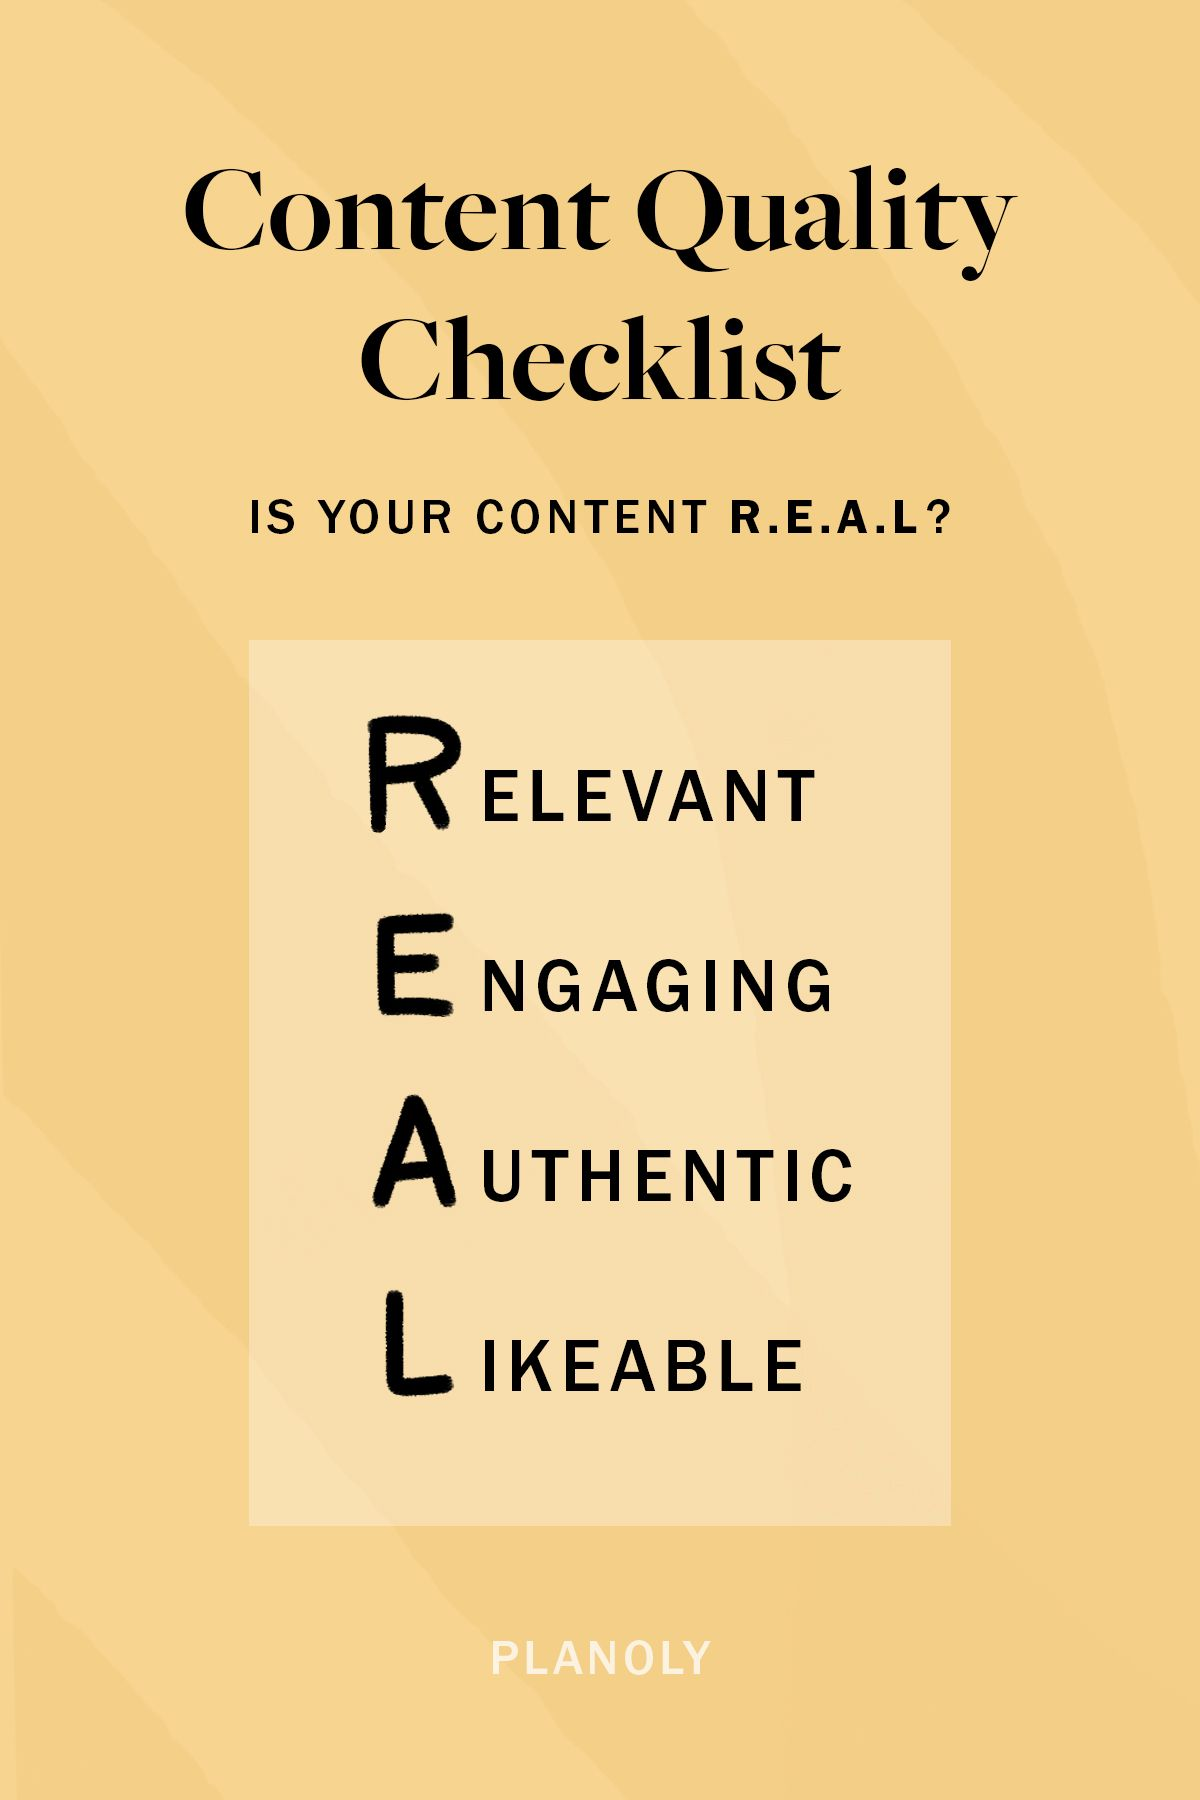 PLANOLY-Blog Post-Pro Tips for Content Creation-Image 1